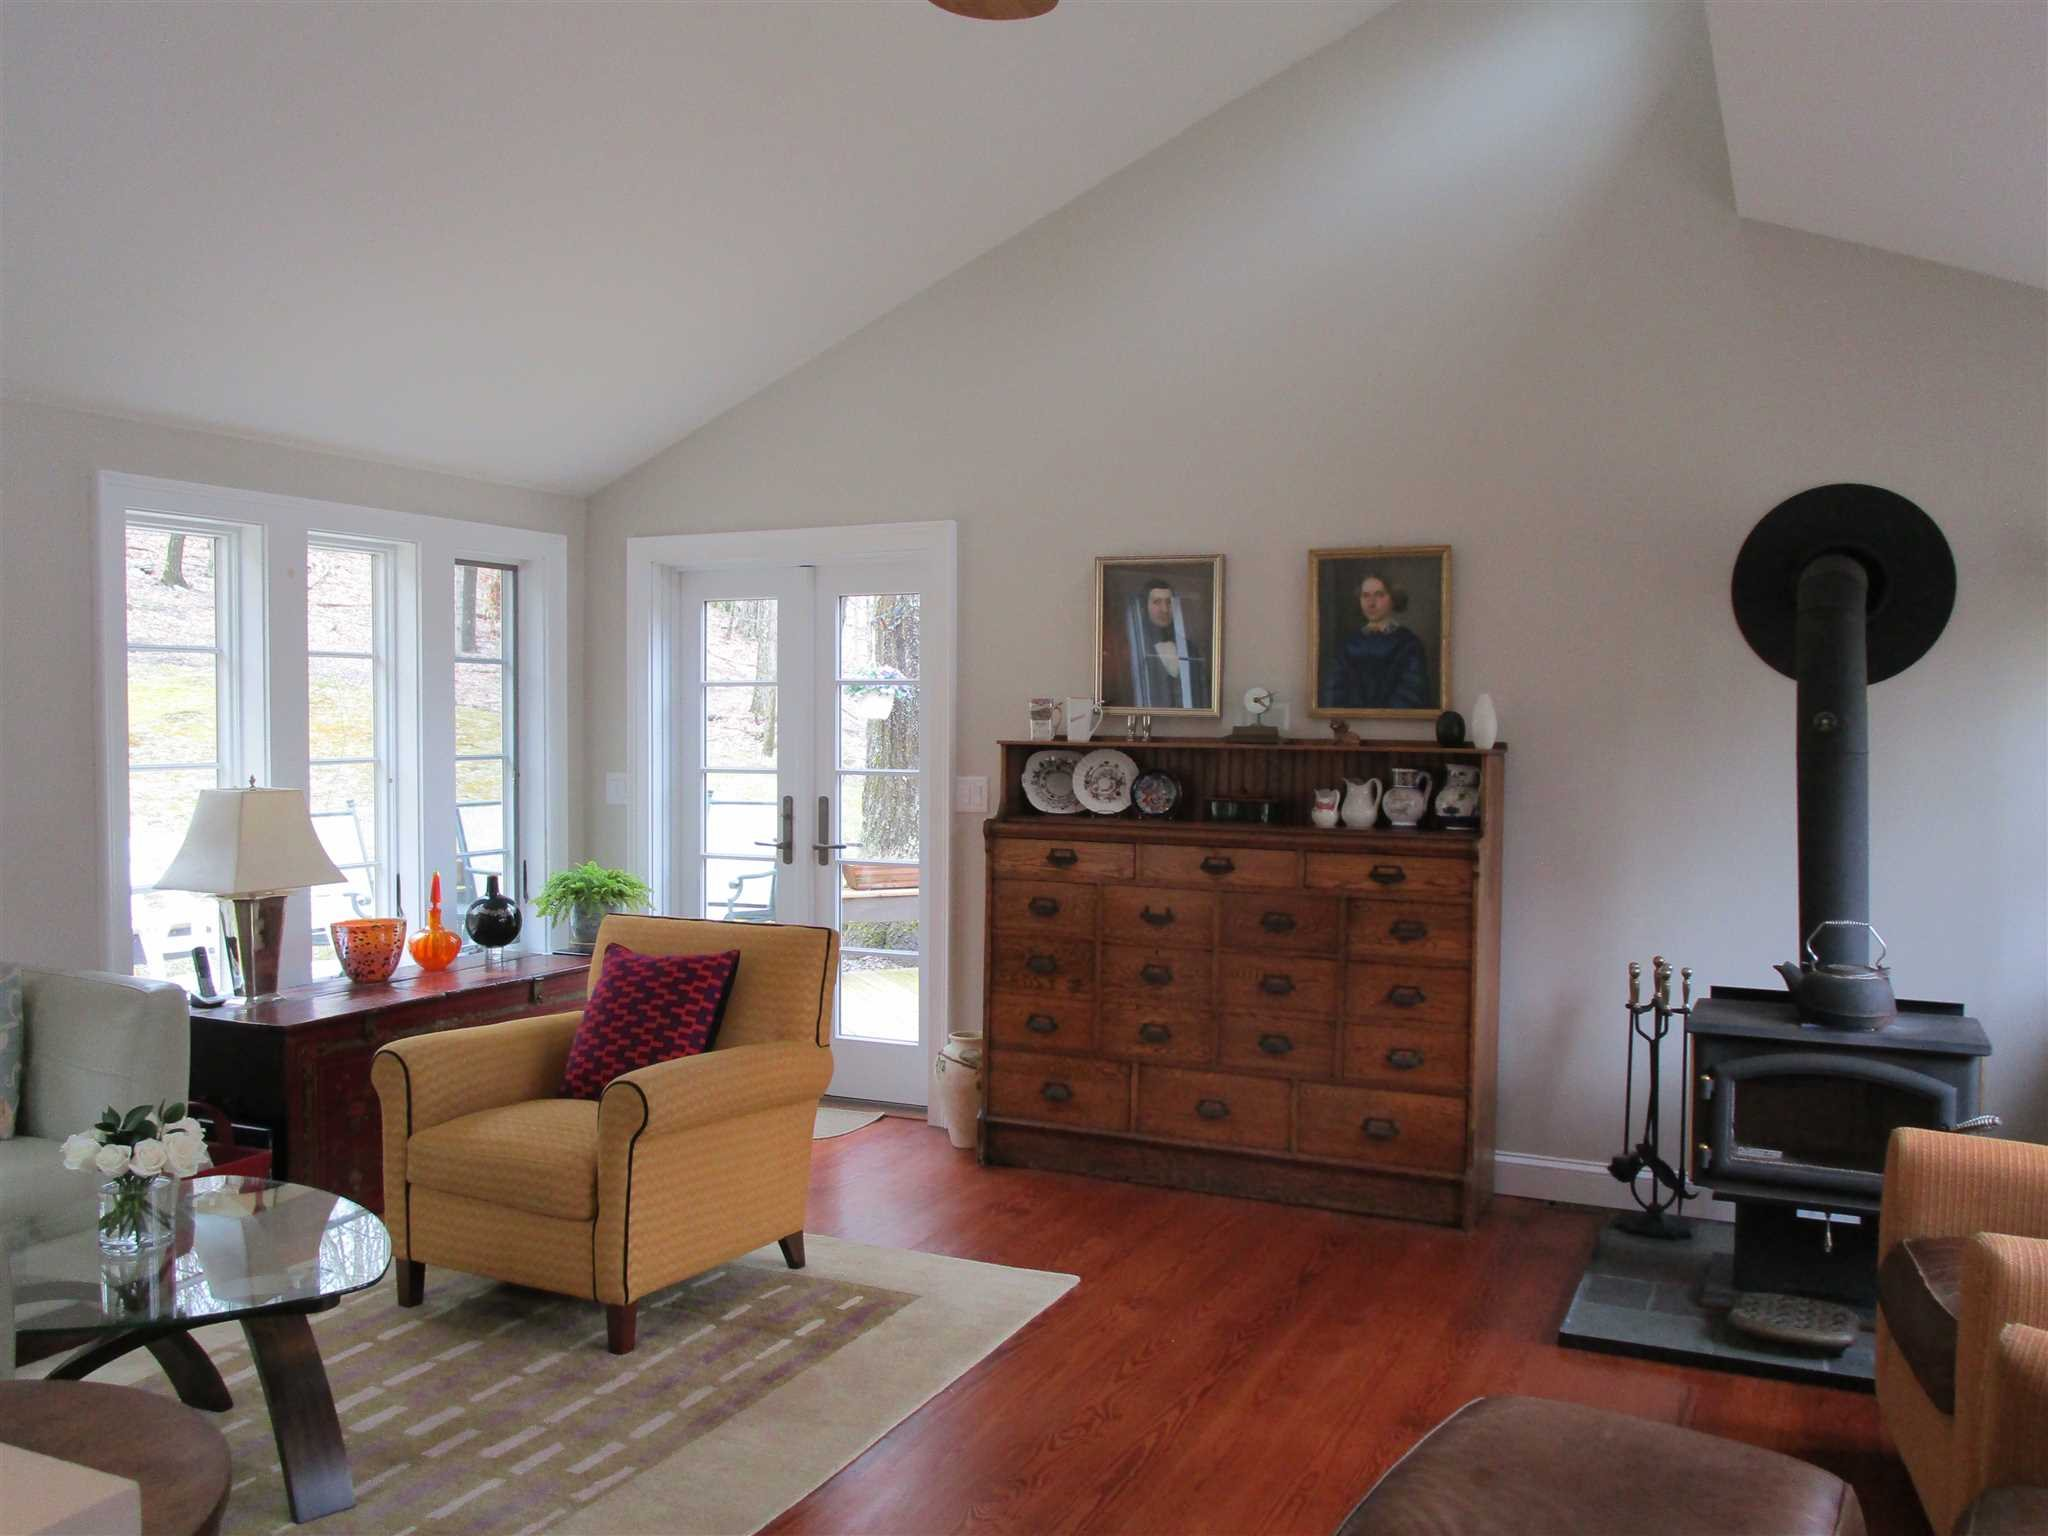 Additional photo for property listing at 46 E POND LILY ROAD 46 E POND LILY ROAD Gallatin, New York 12567 United States